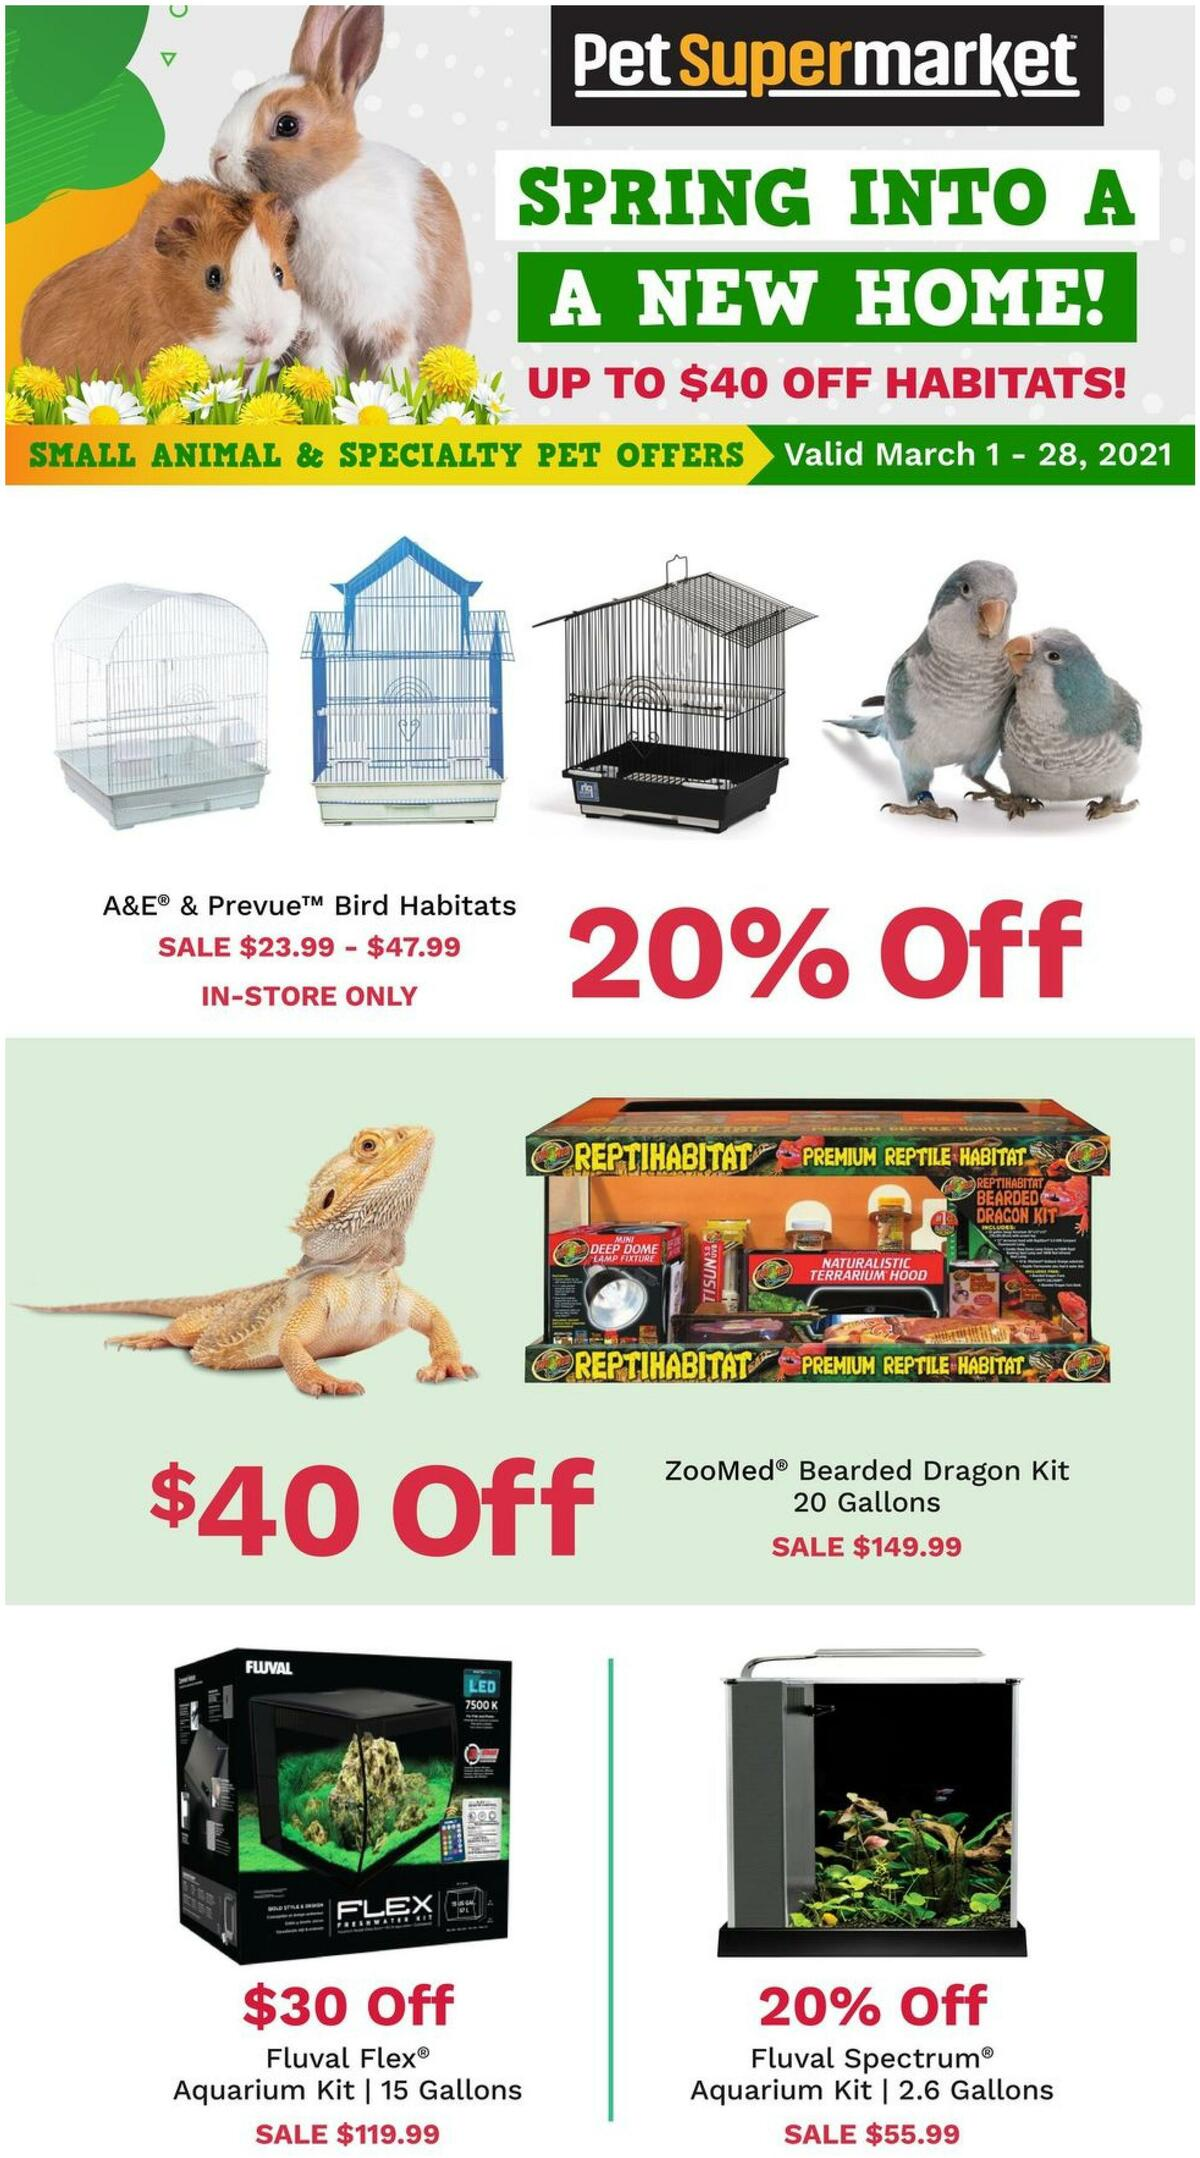 Pet Supermarket Up to $40 Off Animal Habitats Weekly Ad from March 1